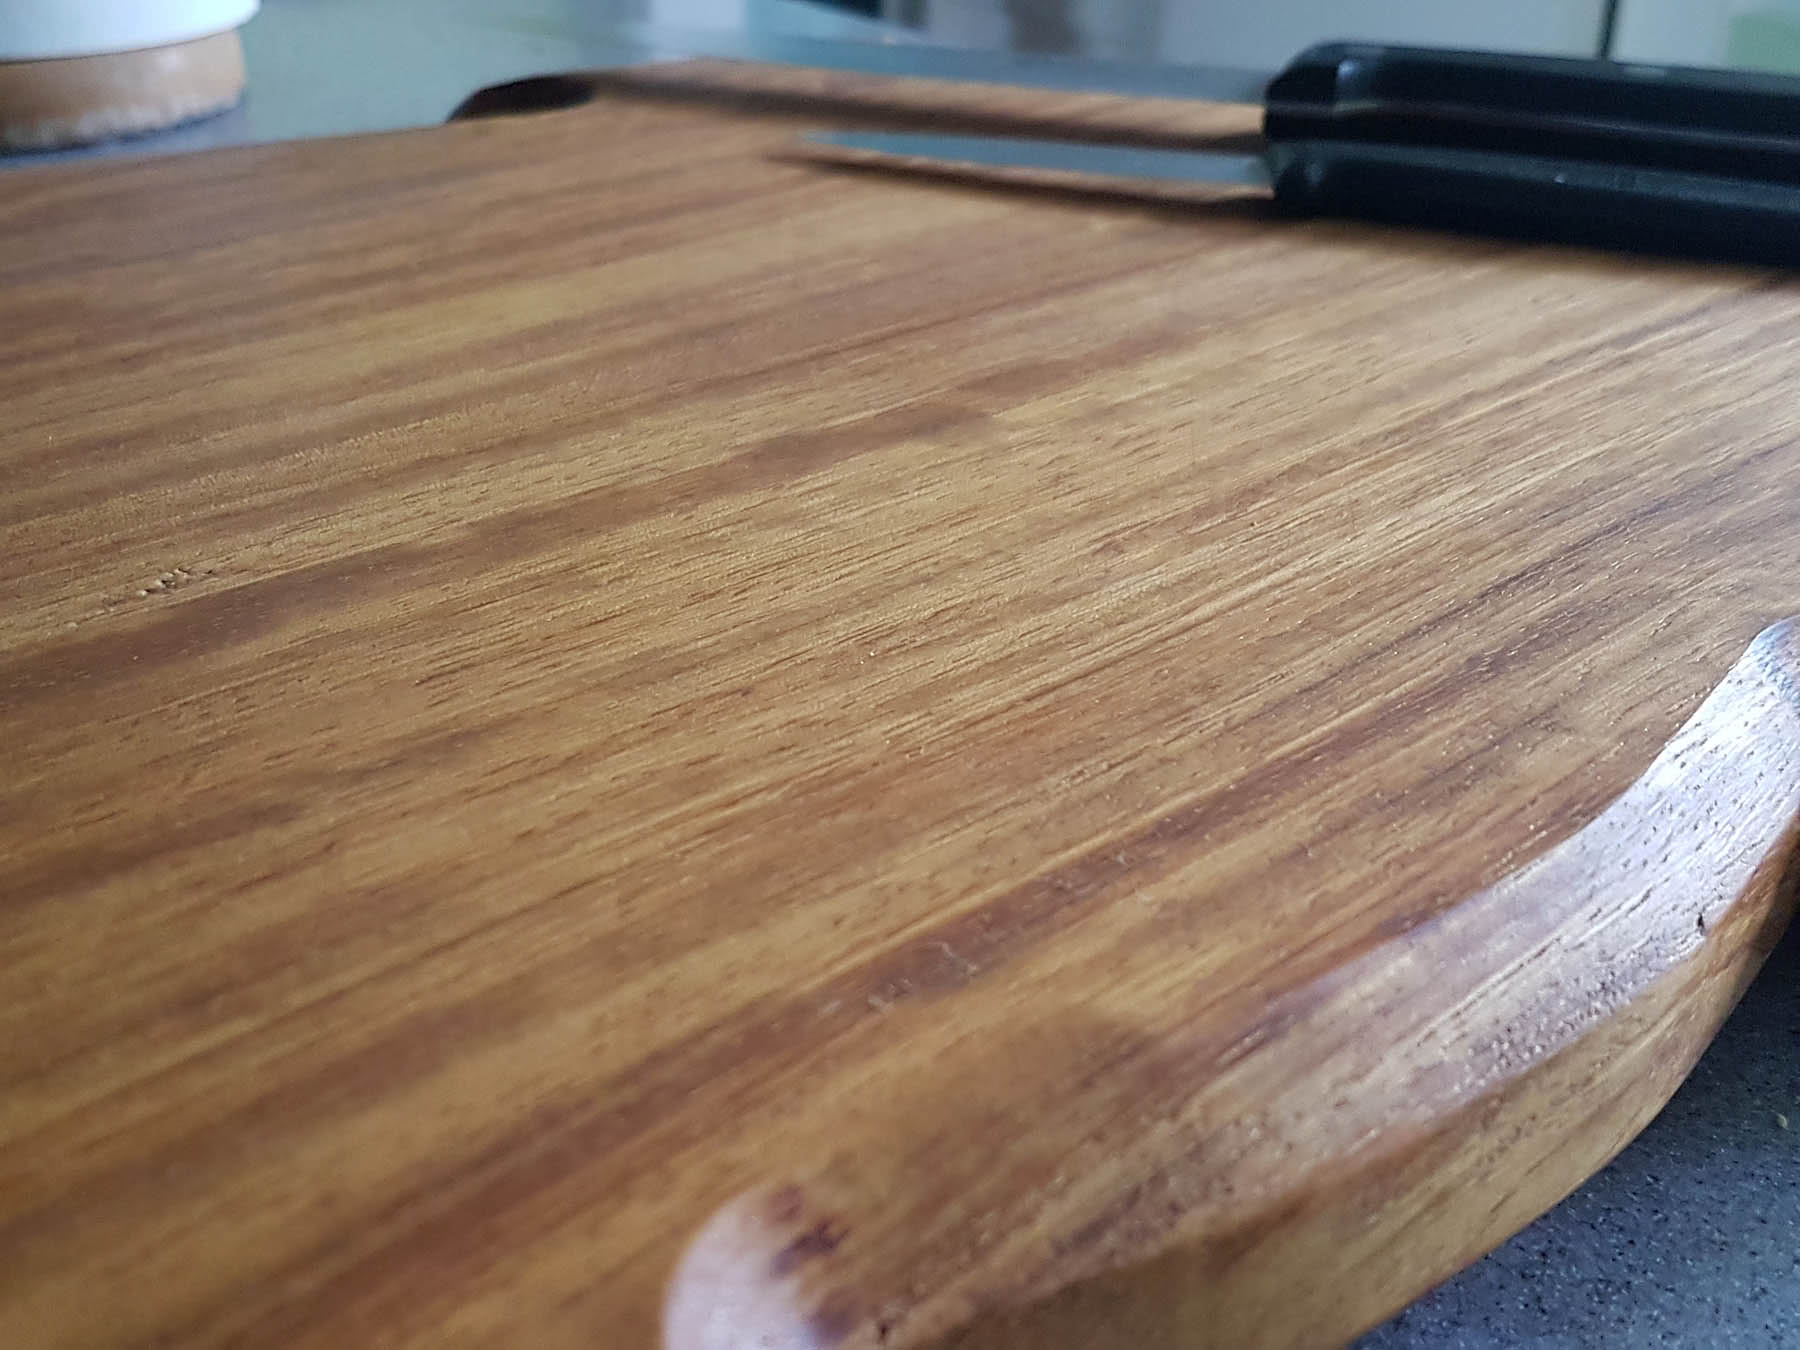 Close up of the Iroko wood grain of pig shaped chopping board